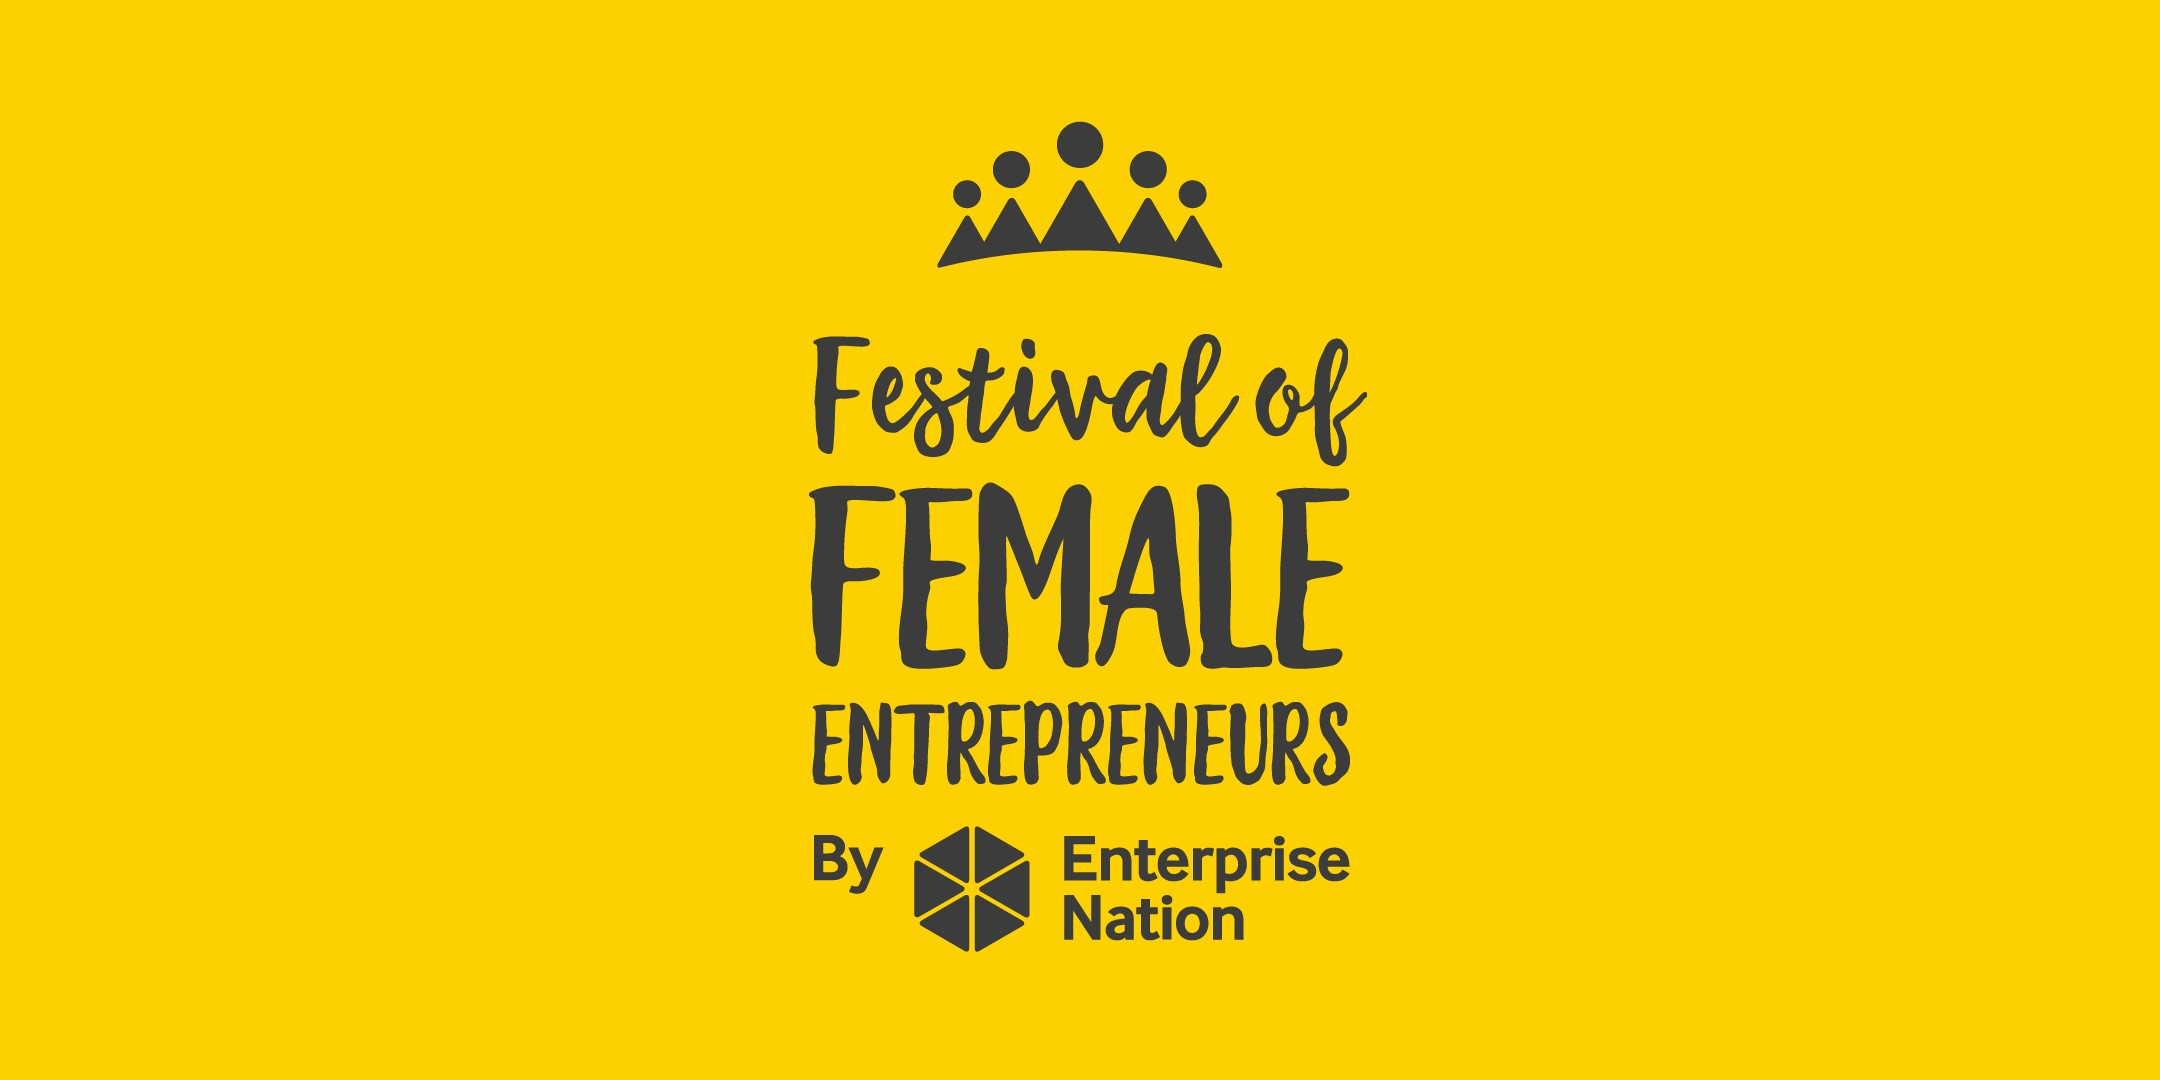 Festival of female entrepreneurs 2018 tickets fri 19 oct 2018 at back for its seventh year this event is a must in your entrepreneurial calendar hosted at the newly refurbished mercure grand hotel in bristol malvernweather